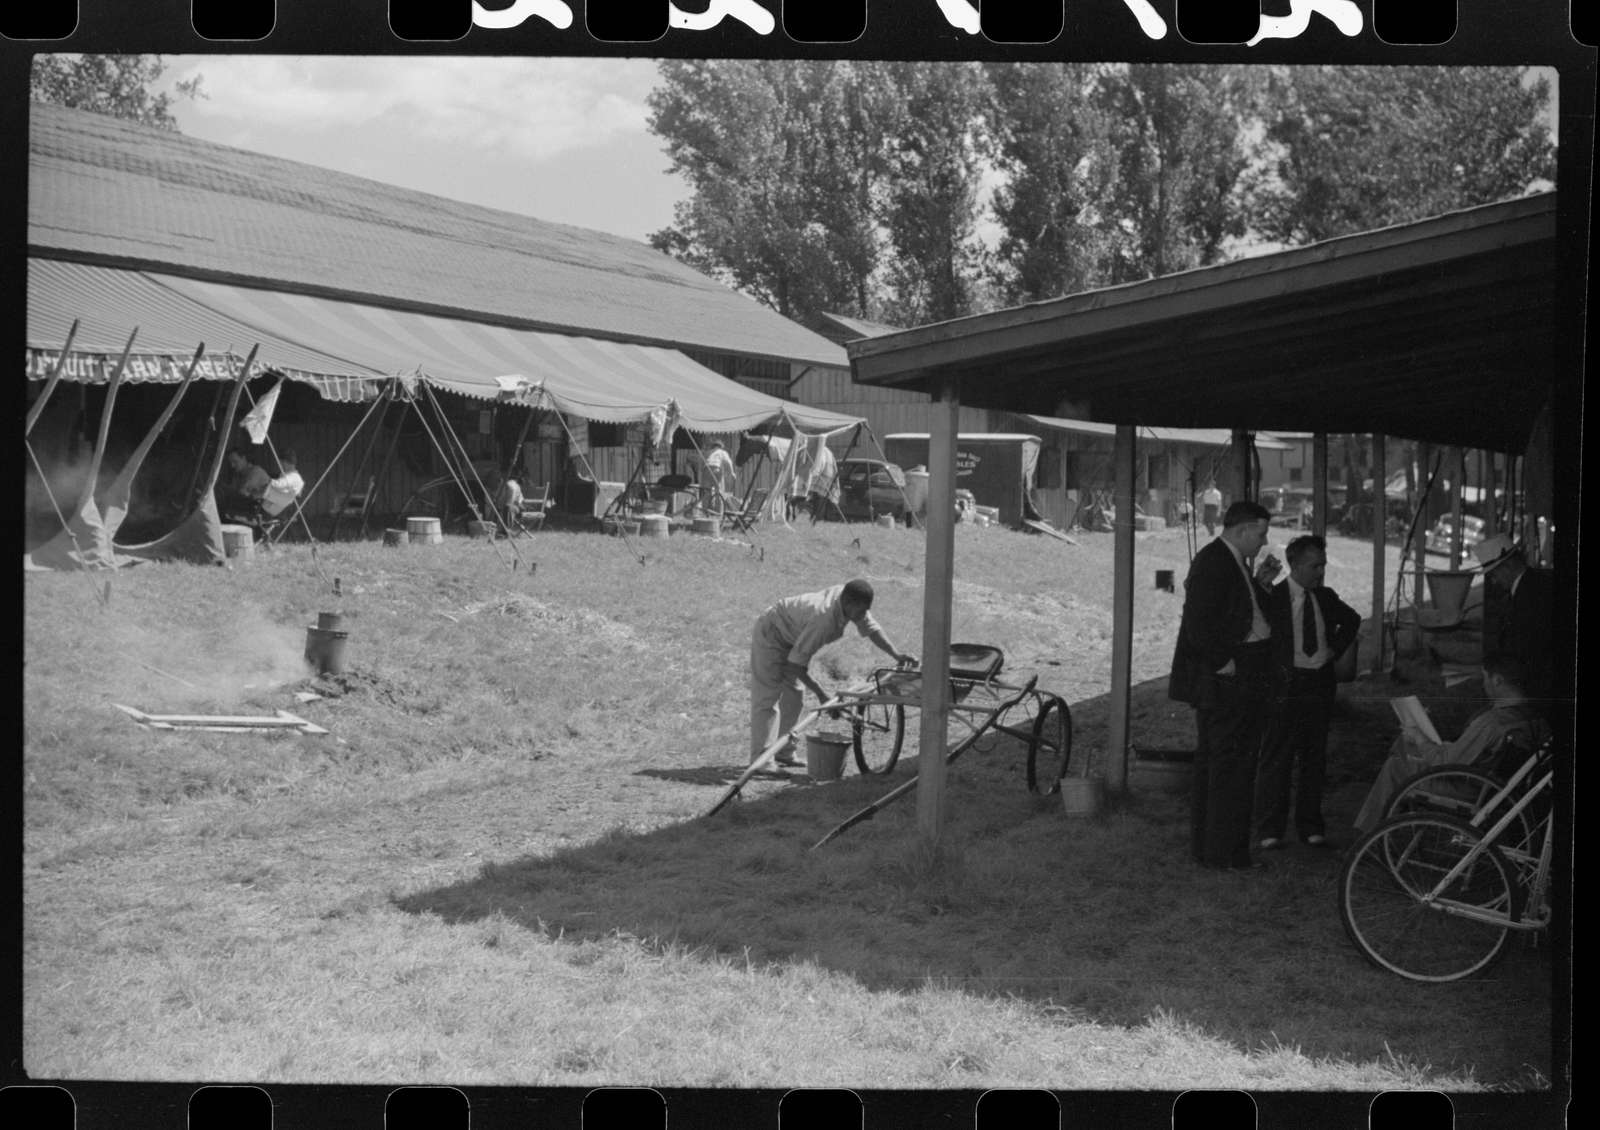 Untitled photo, possibly related to: Spectators at the sulky races at the Rutland Fair, Rutland, Vermont